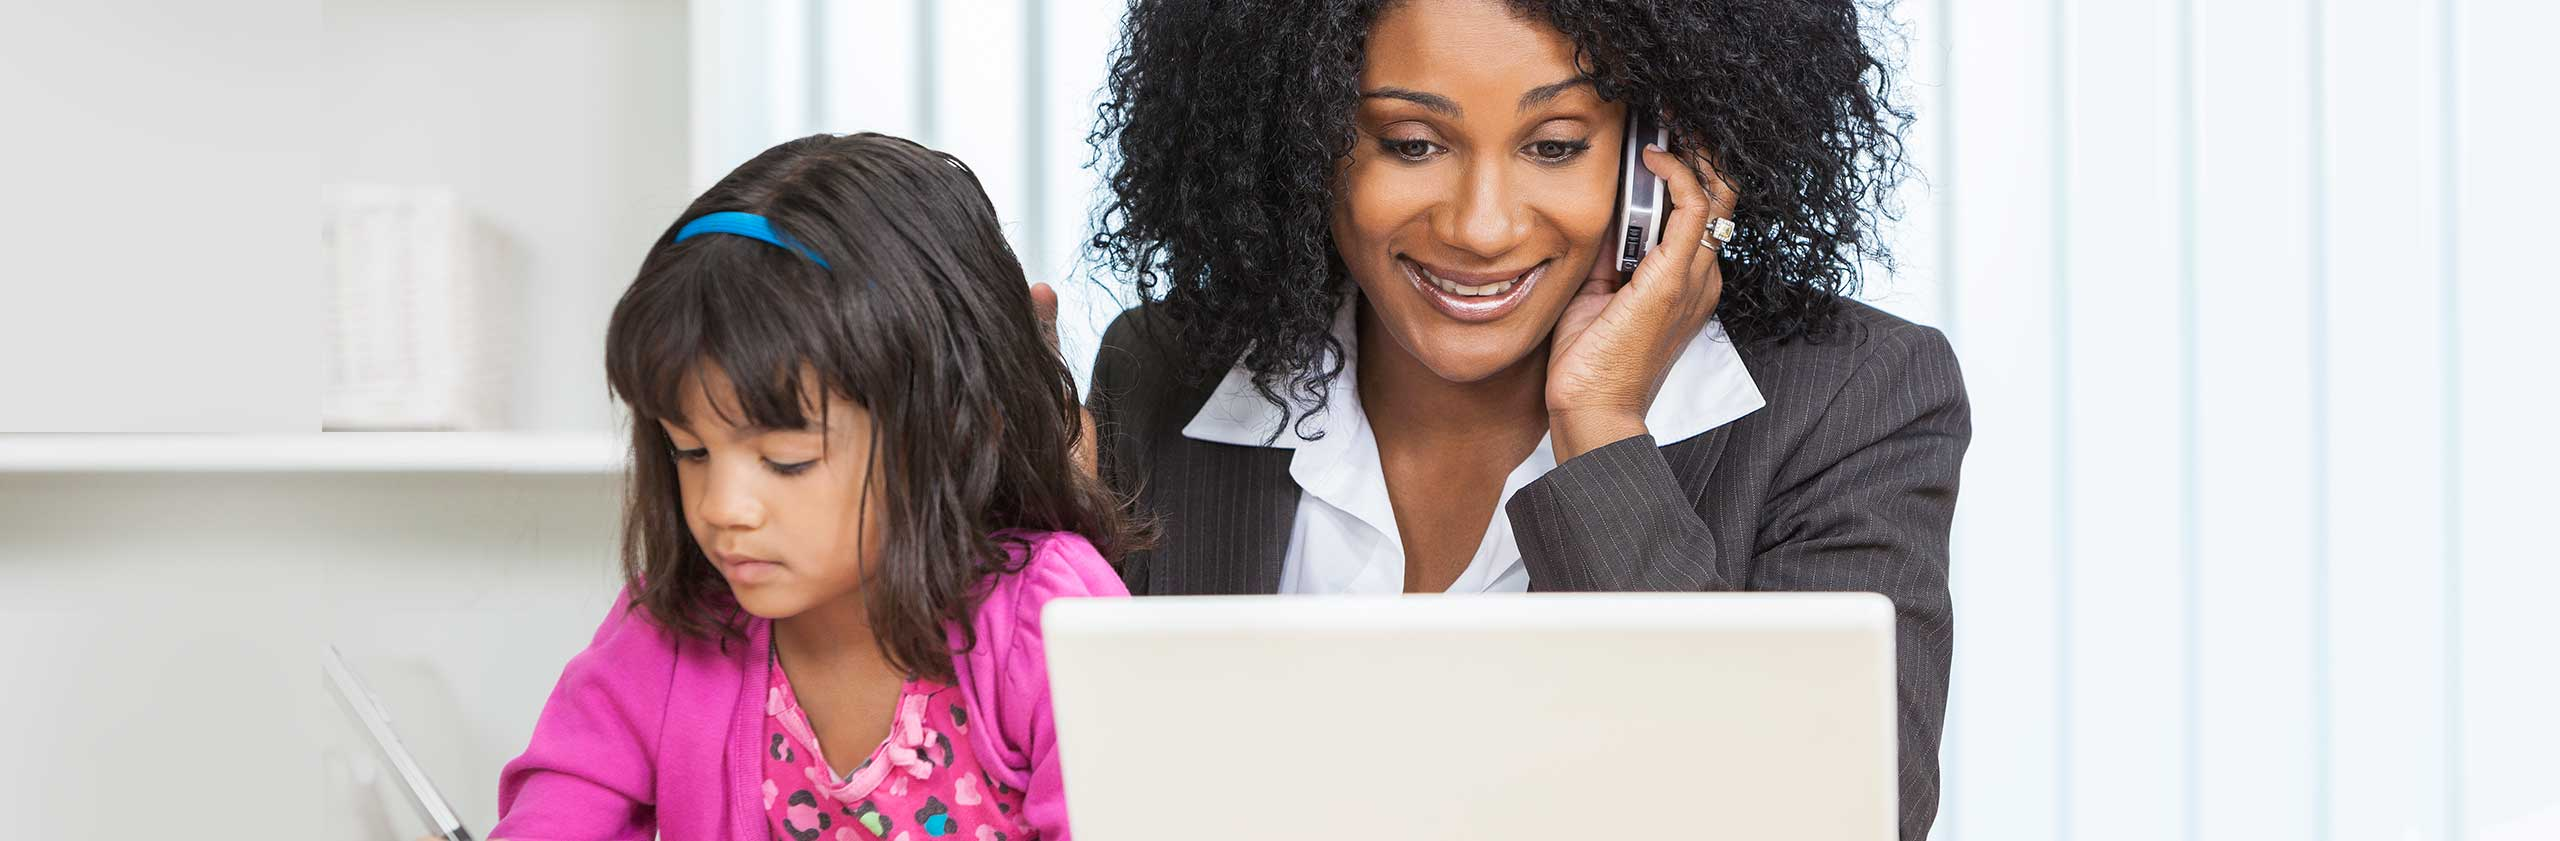 Captivate Office Pulse | Working Women Doing More With Less